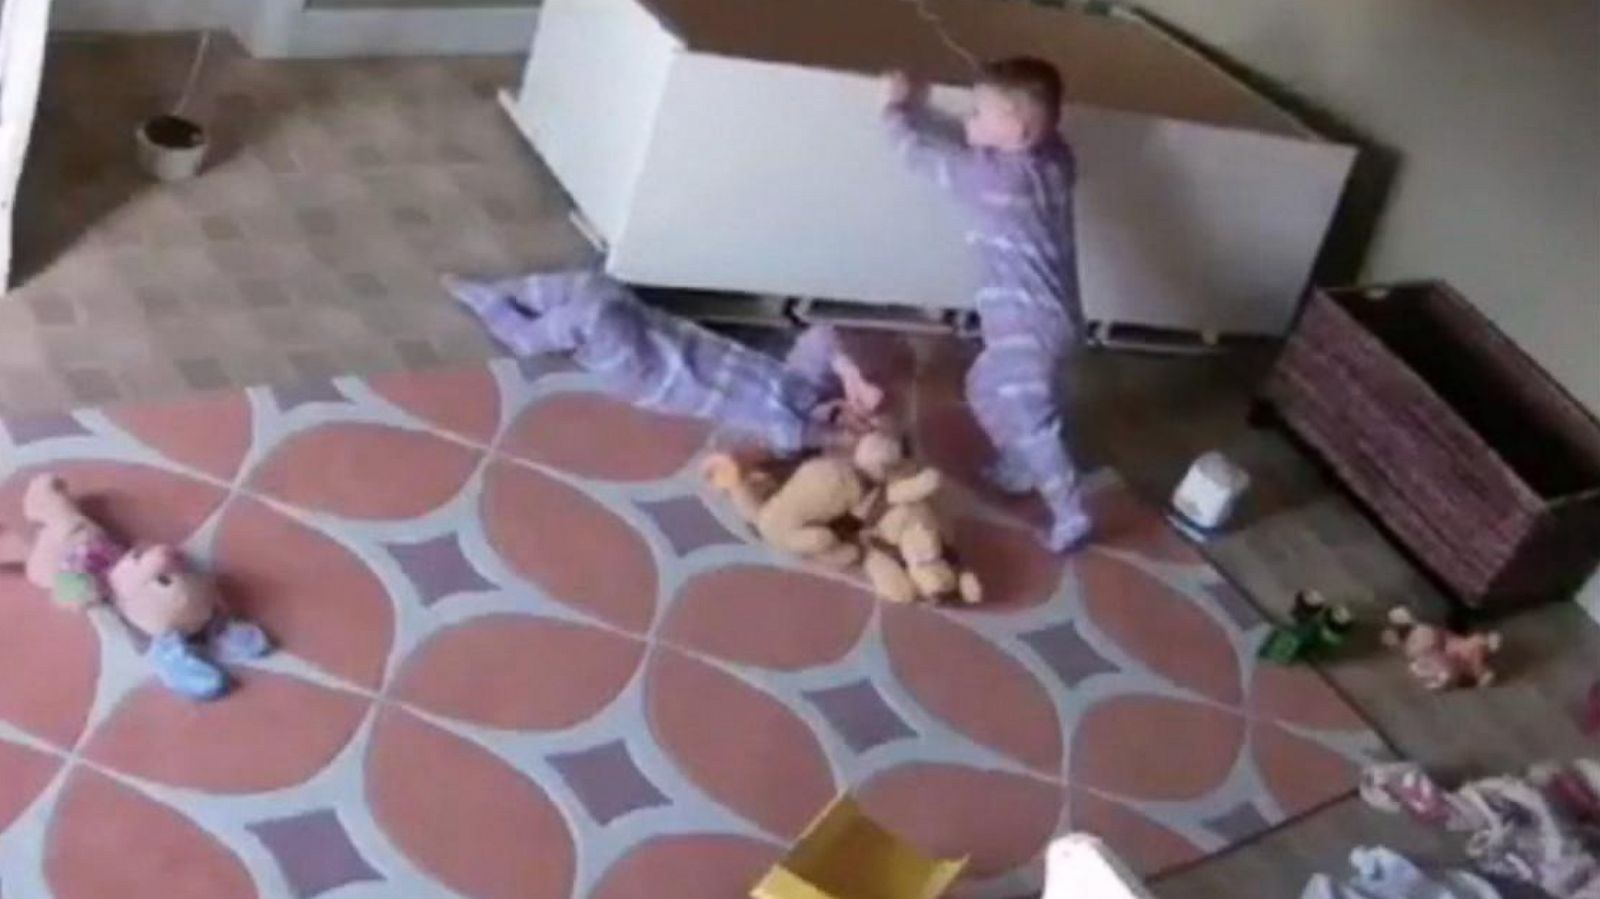 2 year old boy rescues twin brother from fallen dresser